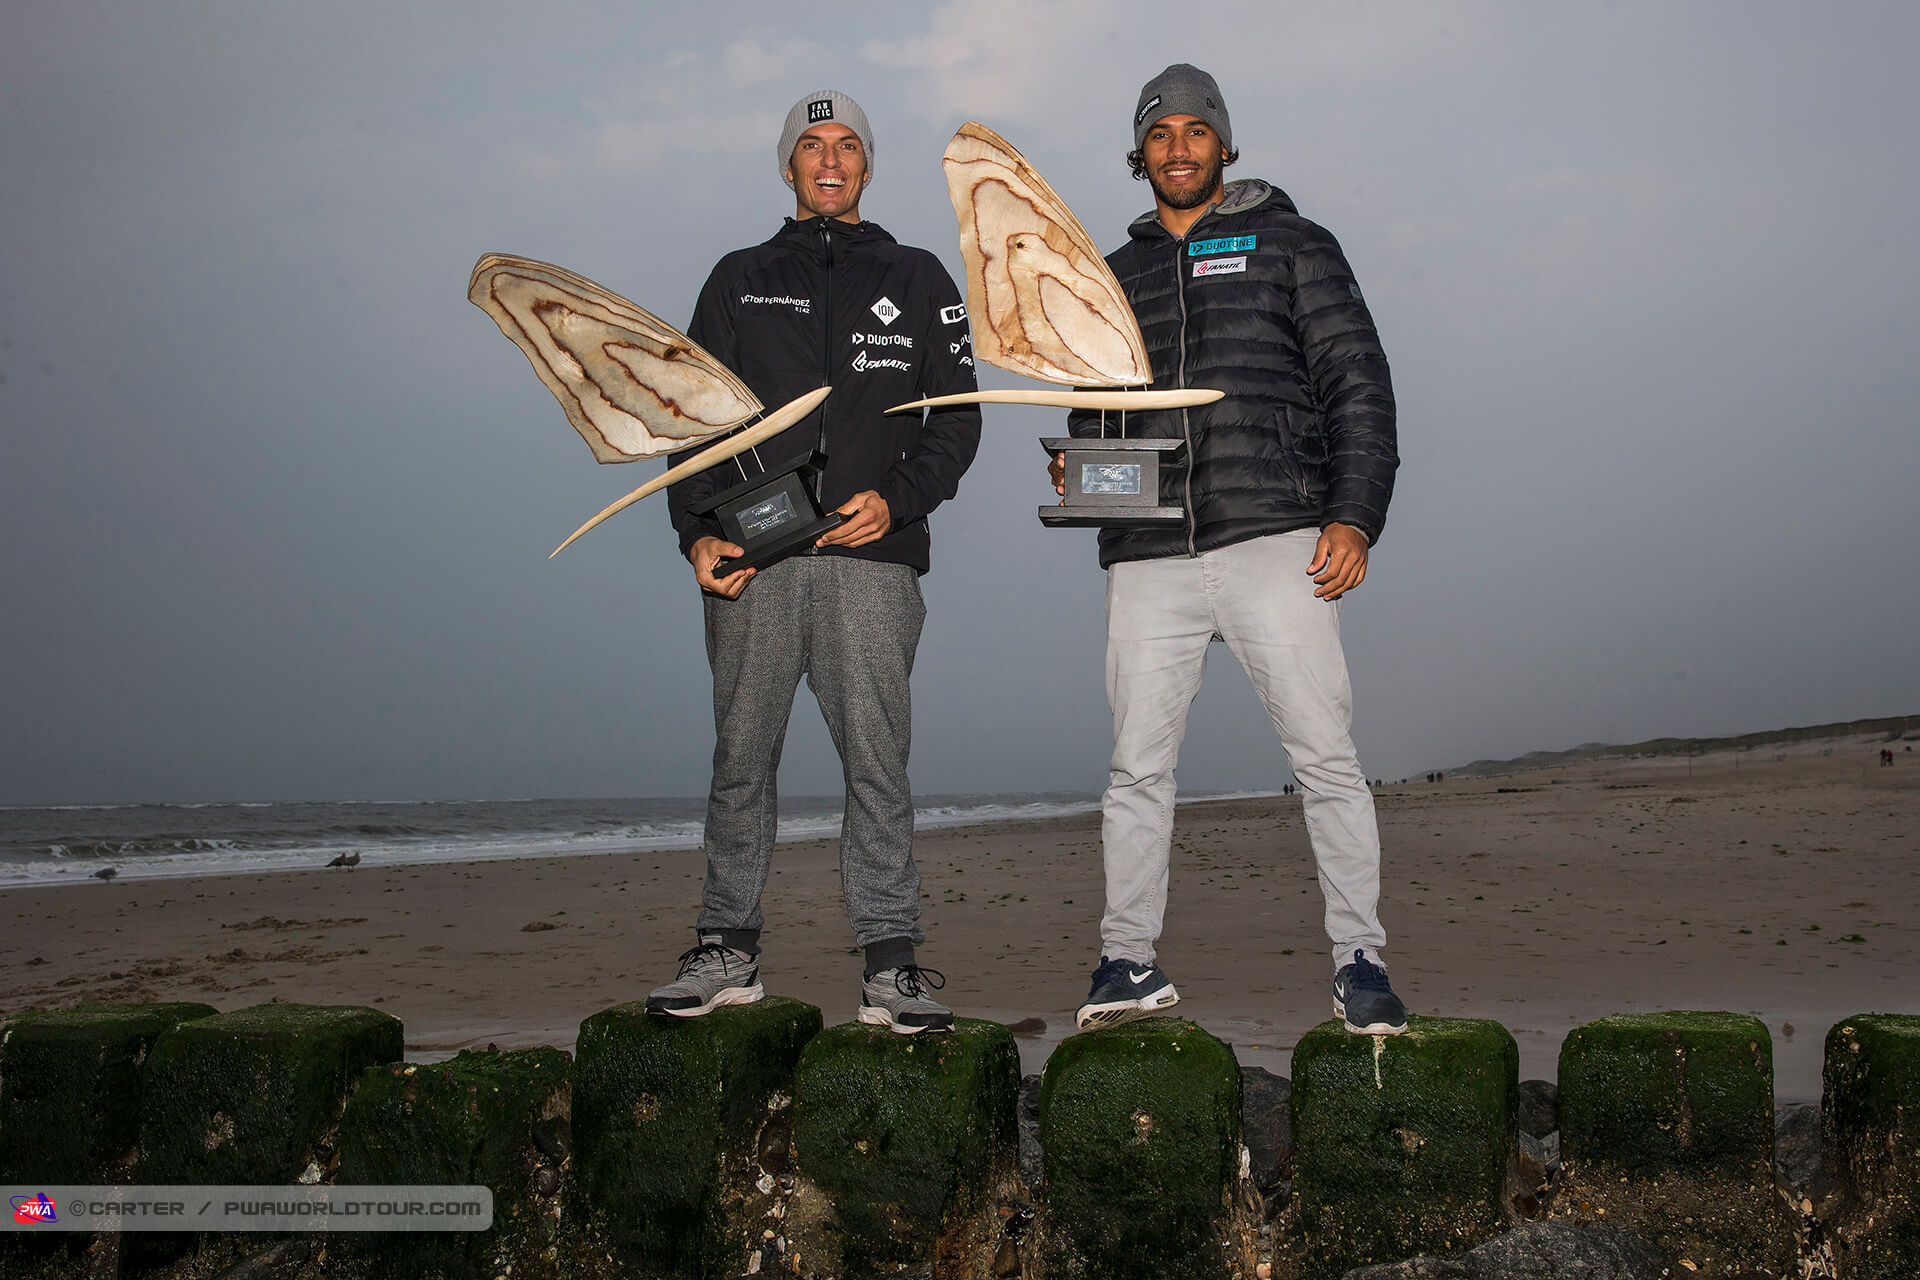 Duotone_Windsurfing_Team_Gollito_and_Victor_Takes_the_titles_SY18